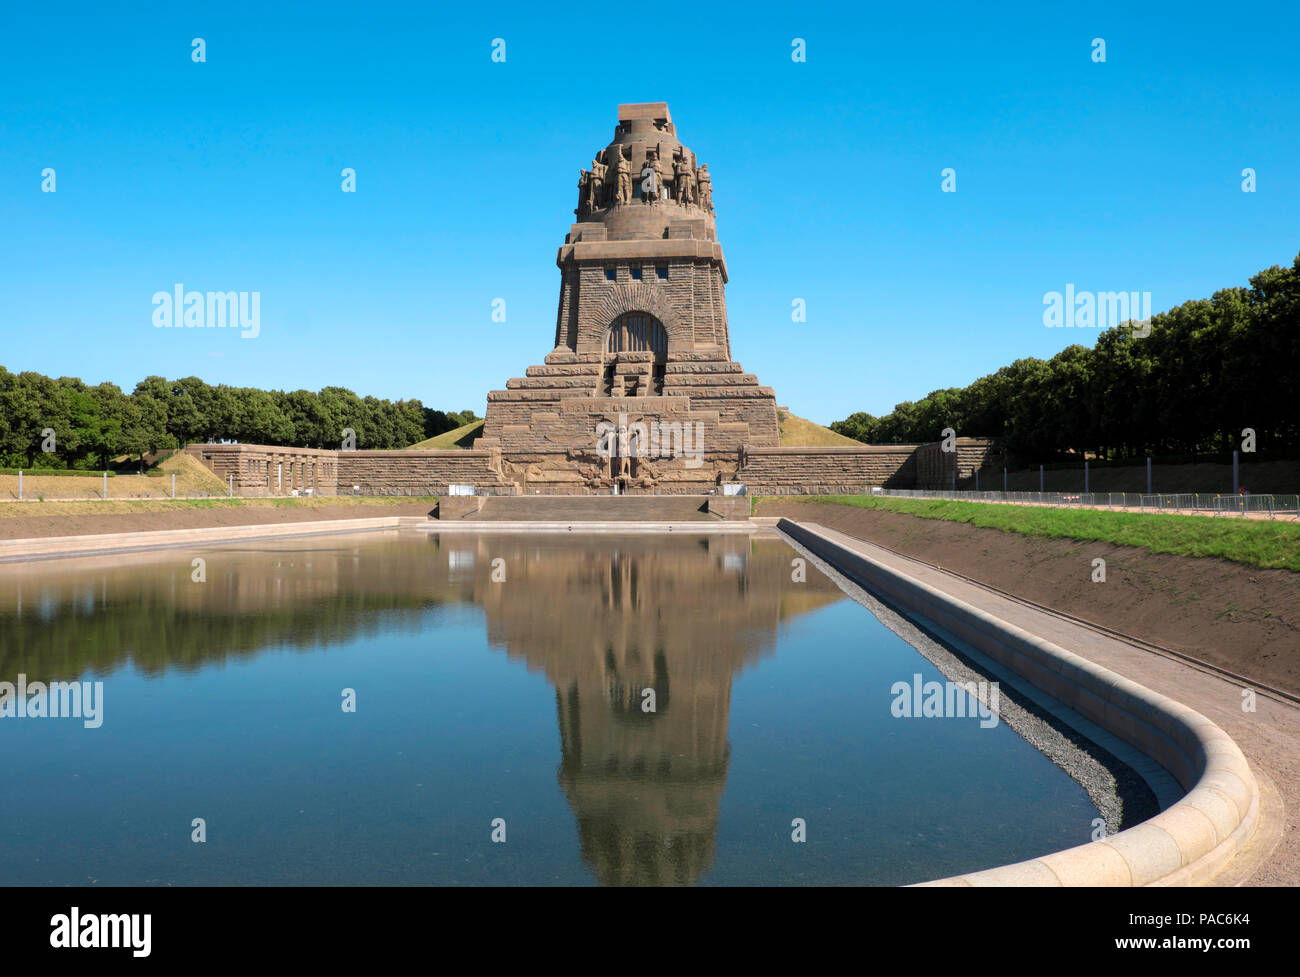 Völkerschlachtdenkmal with the lake of tears around the fallen soldiers, Leipzig, Saxony, Germany - Stock Image